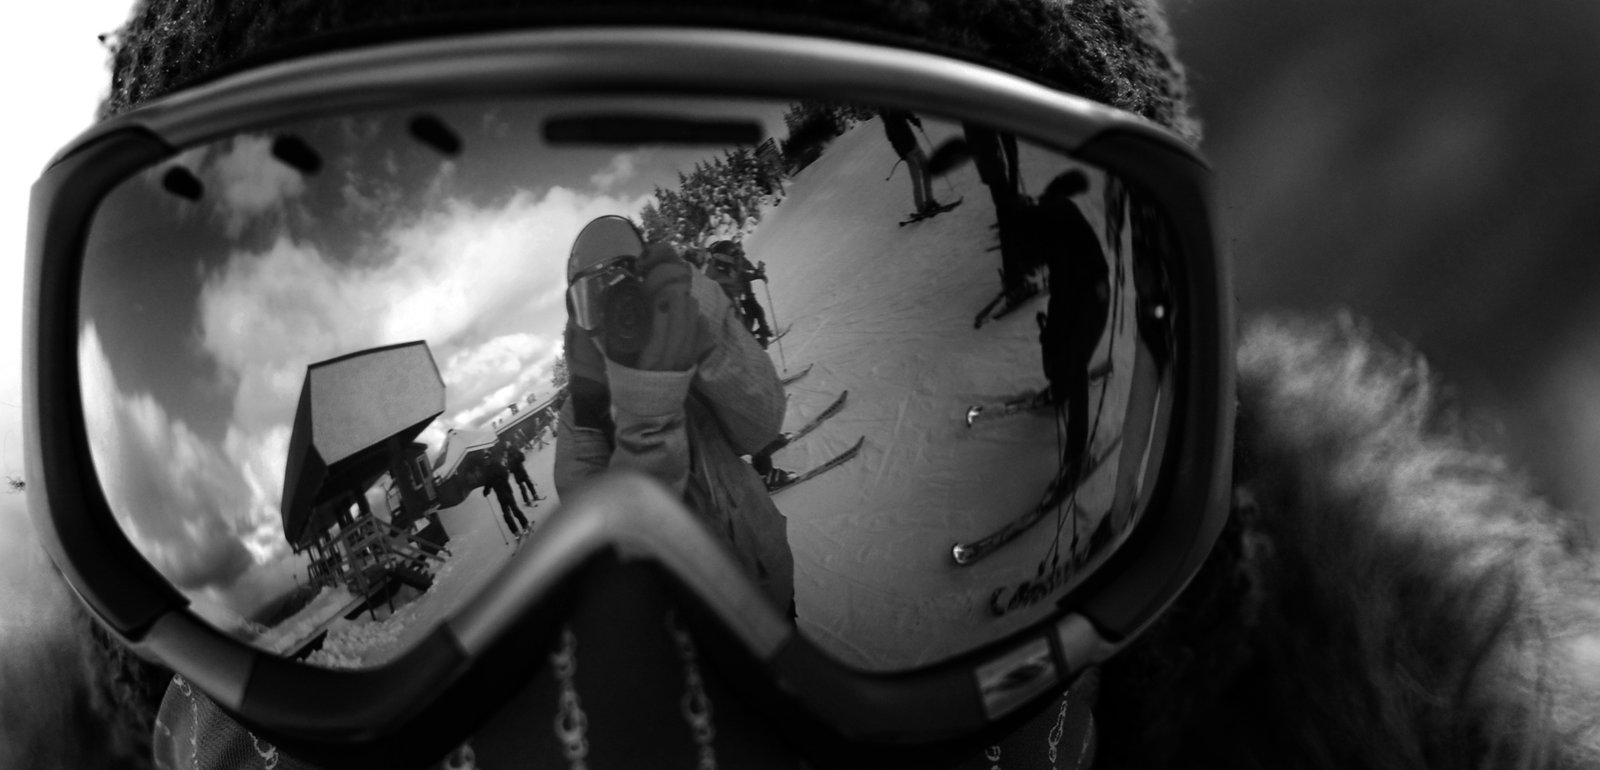 Reflection in Goggles